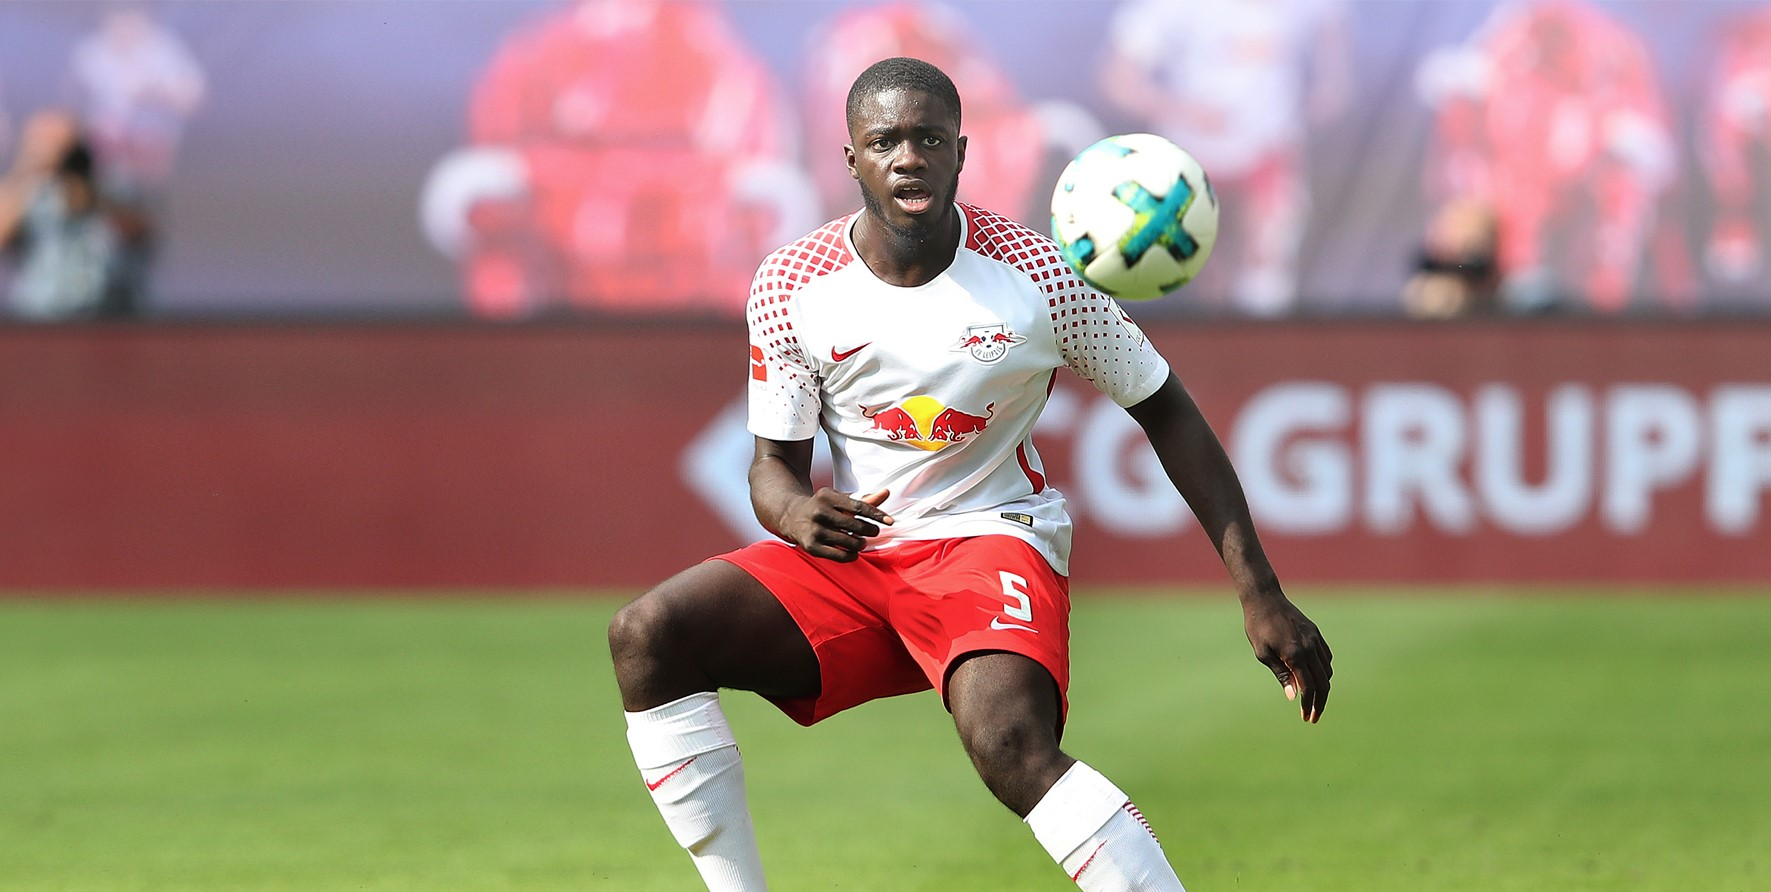 RB Leipzig: the new kids on the block that Man United cannot take lightly